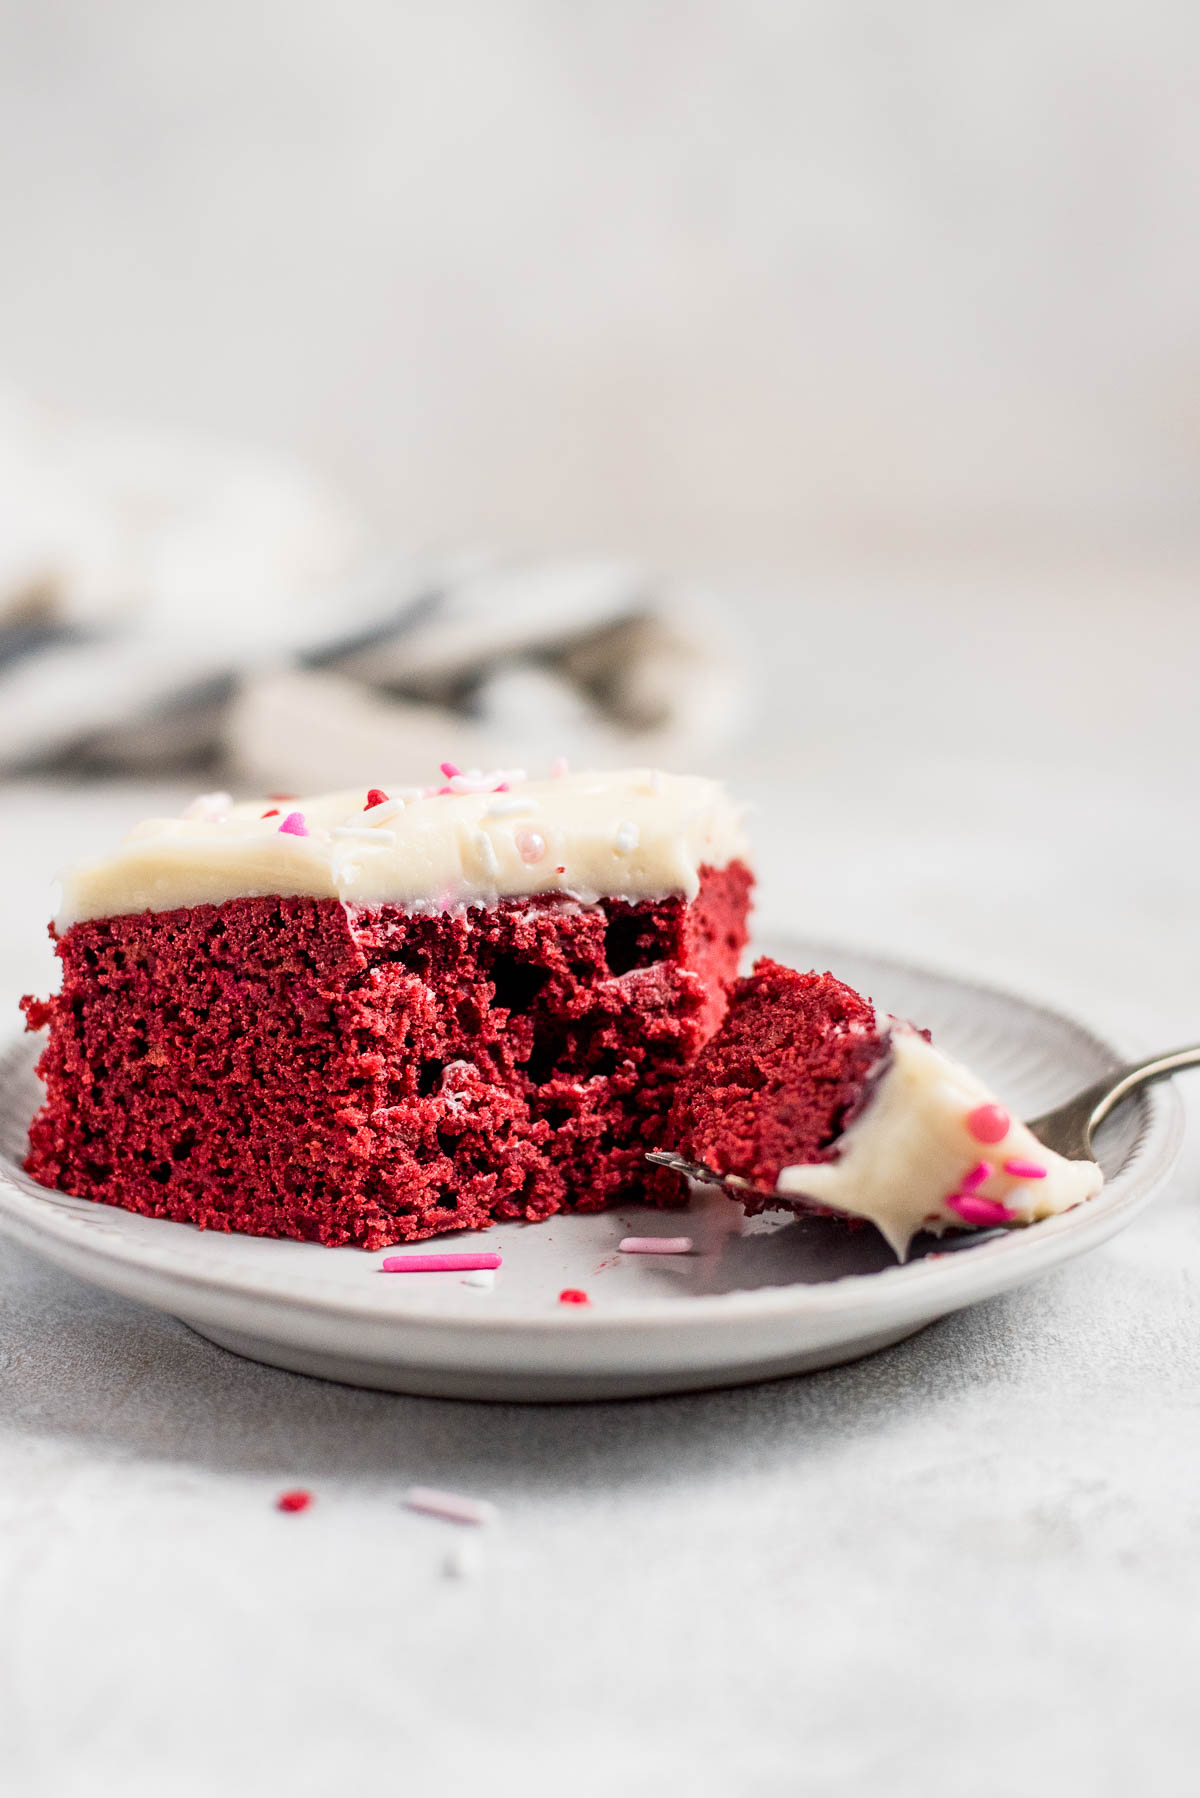 red velvet sheet cake on plate with piece missing